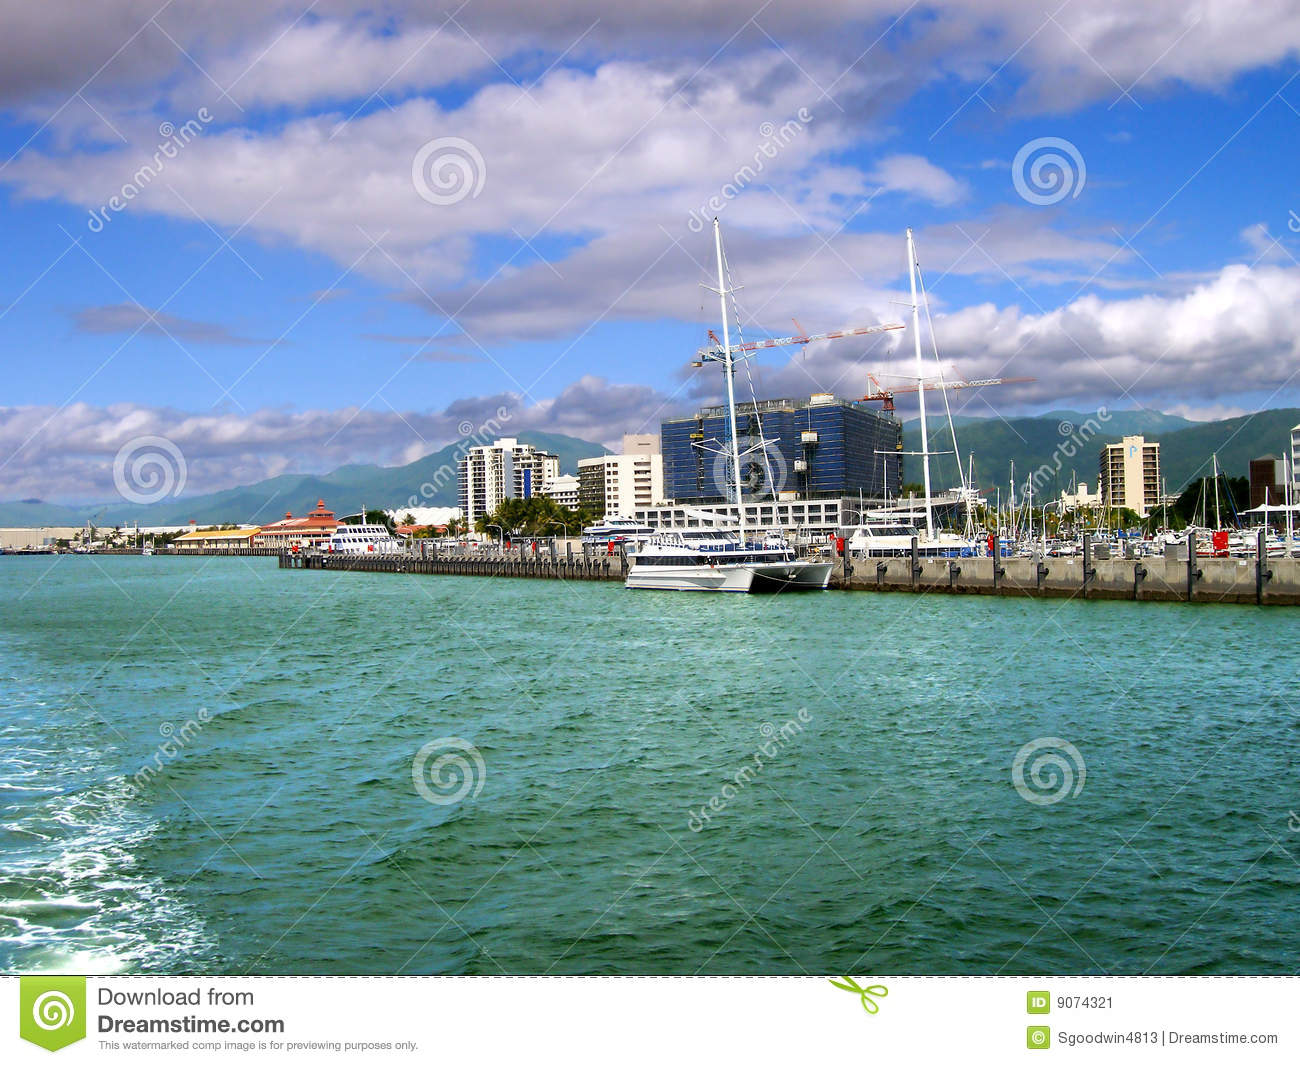 View of Cairns, Australia from the water